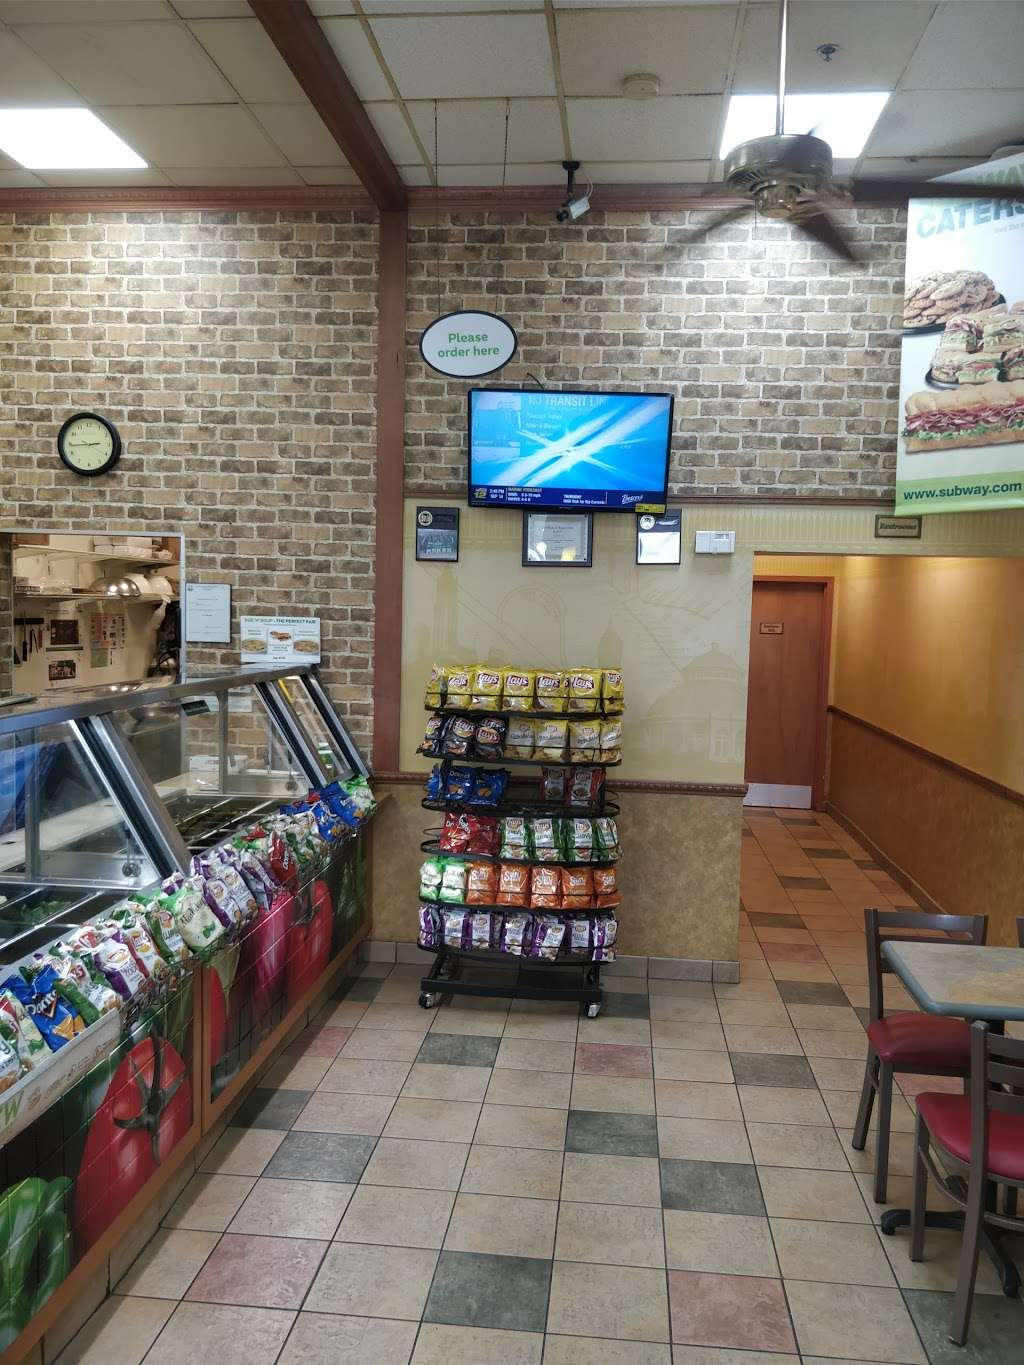 Subway Restaurants - restaurant  | Photo 1 of 8 | Address: 2010 John Fitzgerald Kennedy Blvd, Union City, NJ 07087, USA | Phone: (201) 325-0060